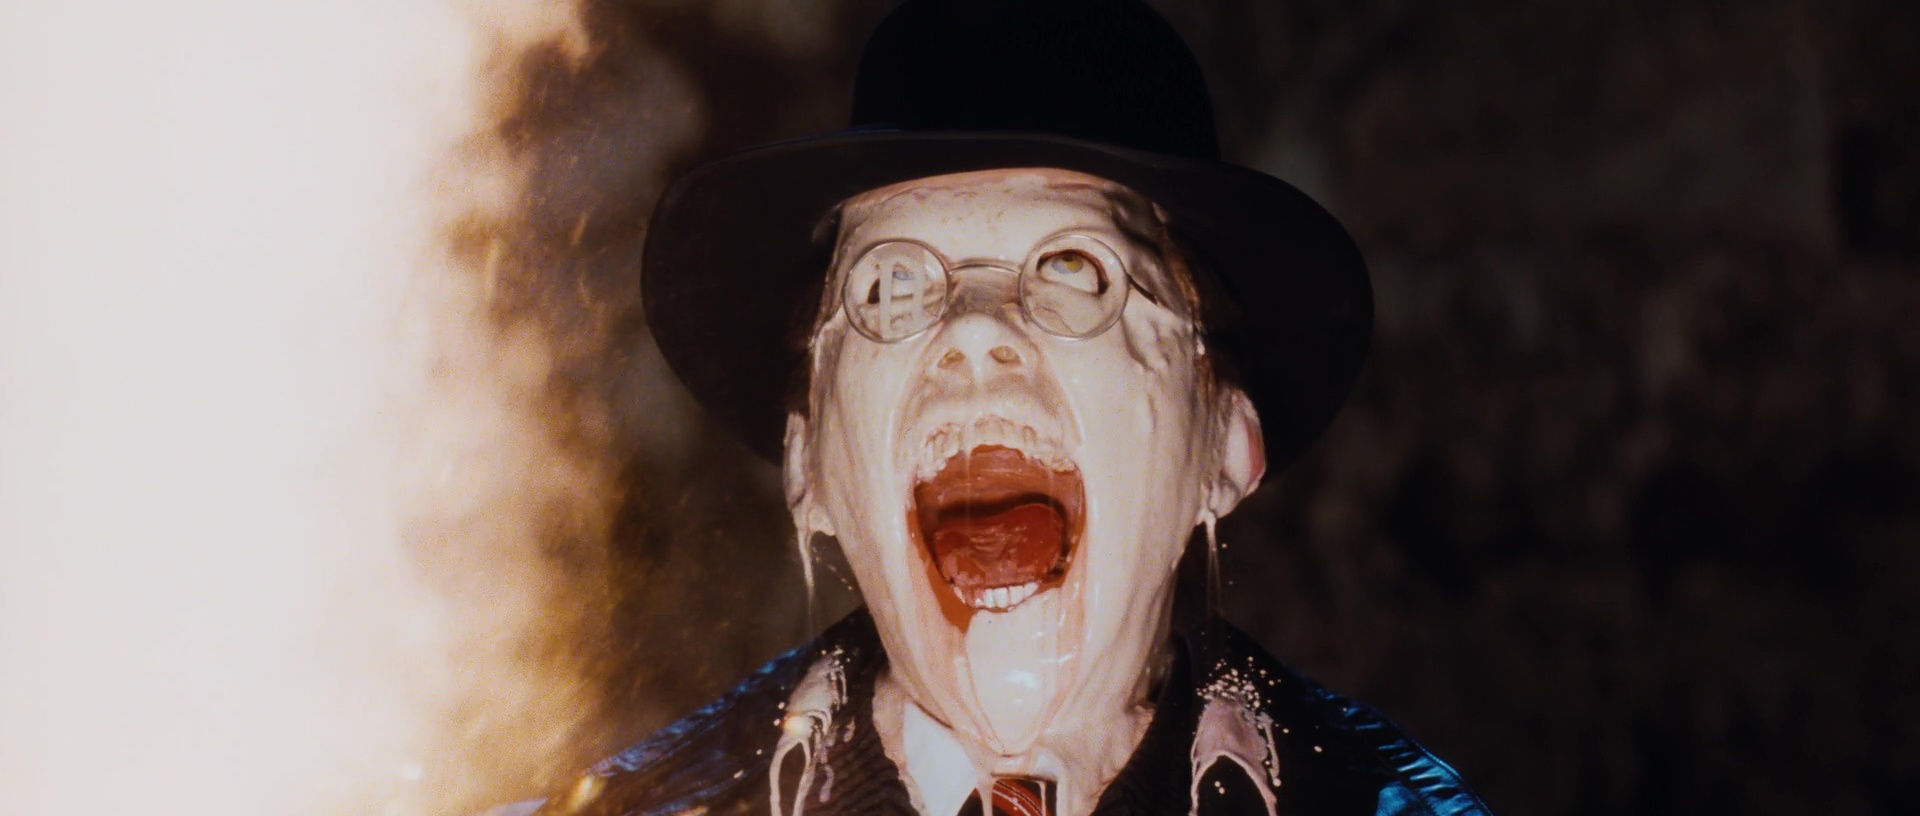 IMAGE(http://images.wikia.com/indianajones/images/e/e2/Death_by_face_melting.jpg)